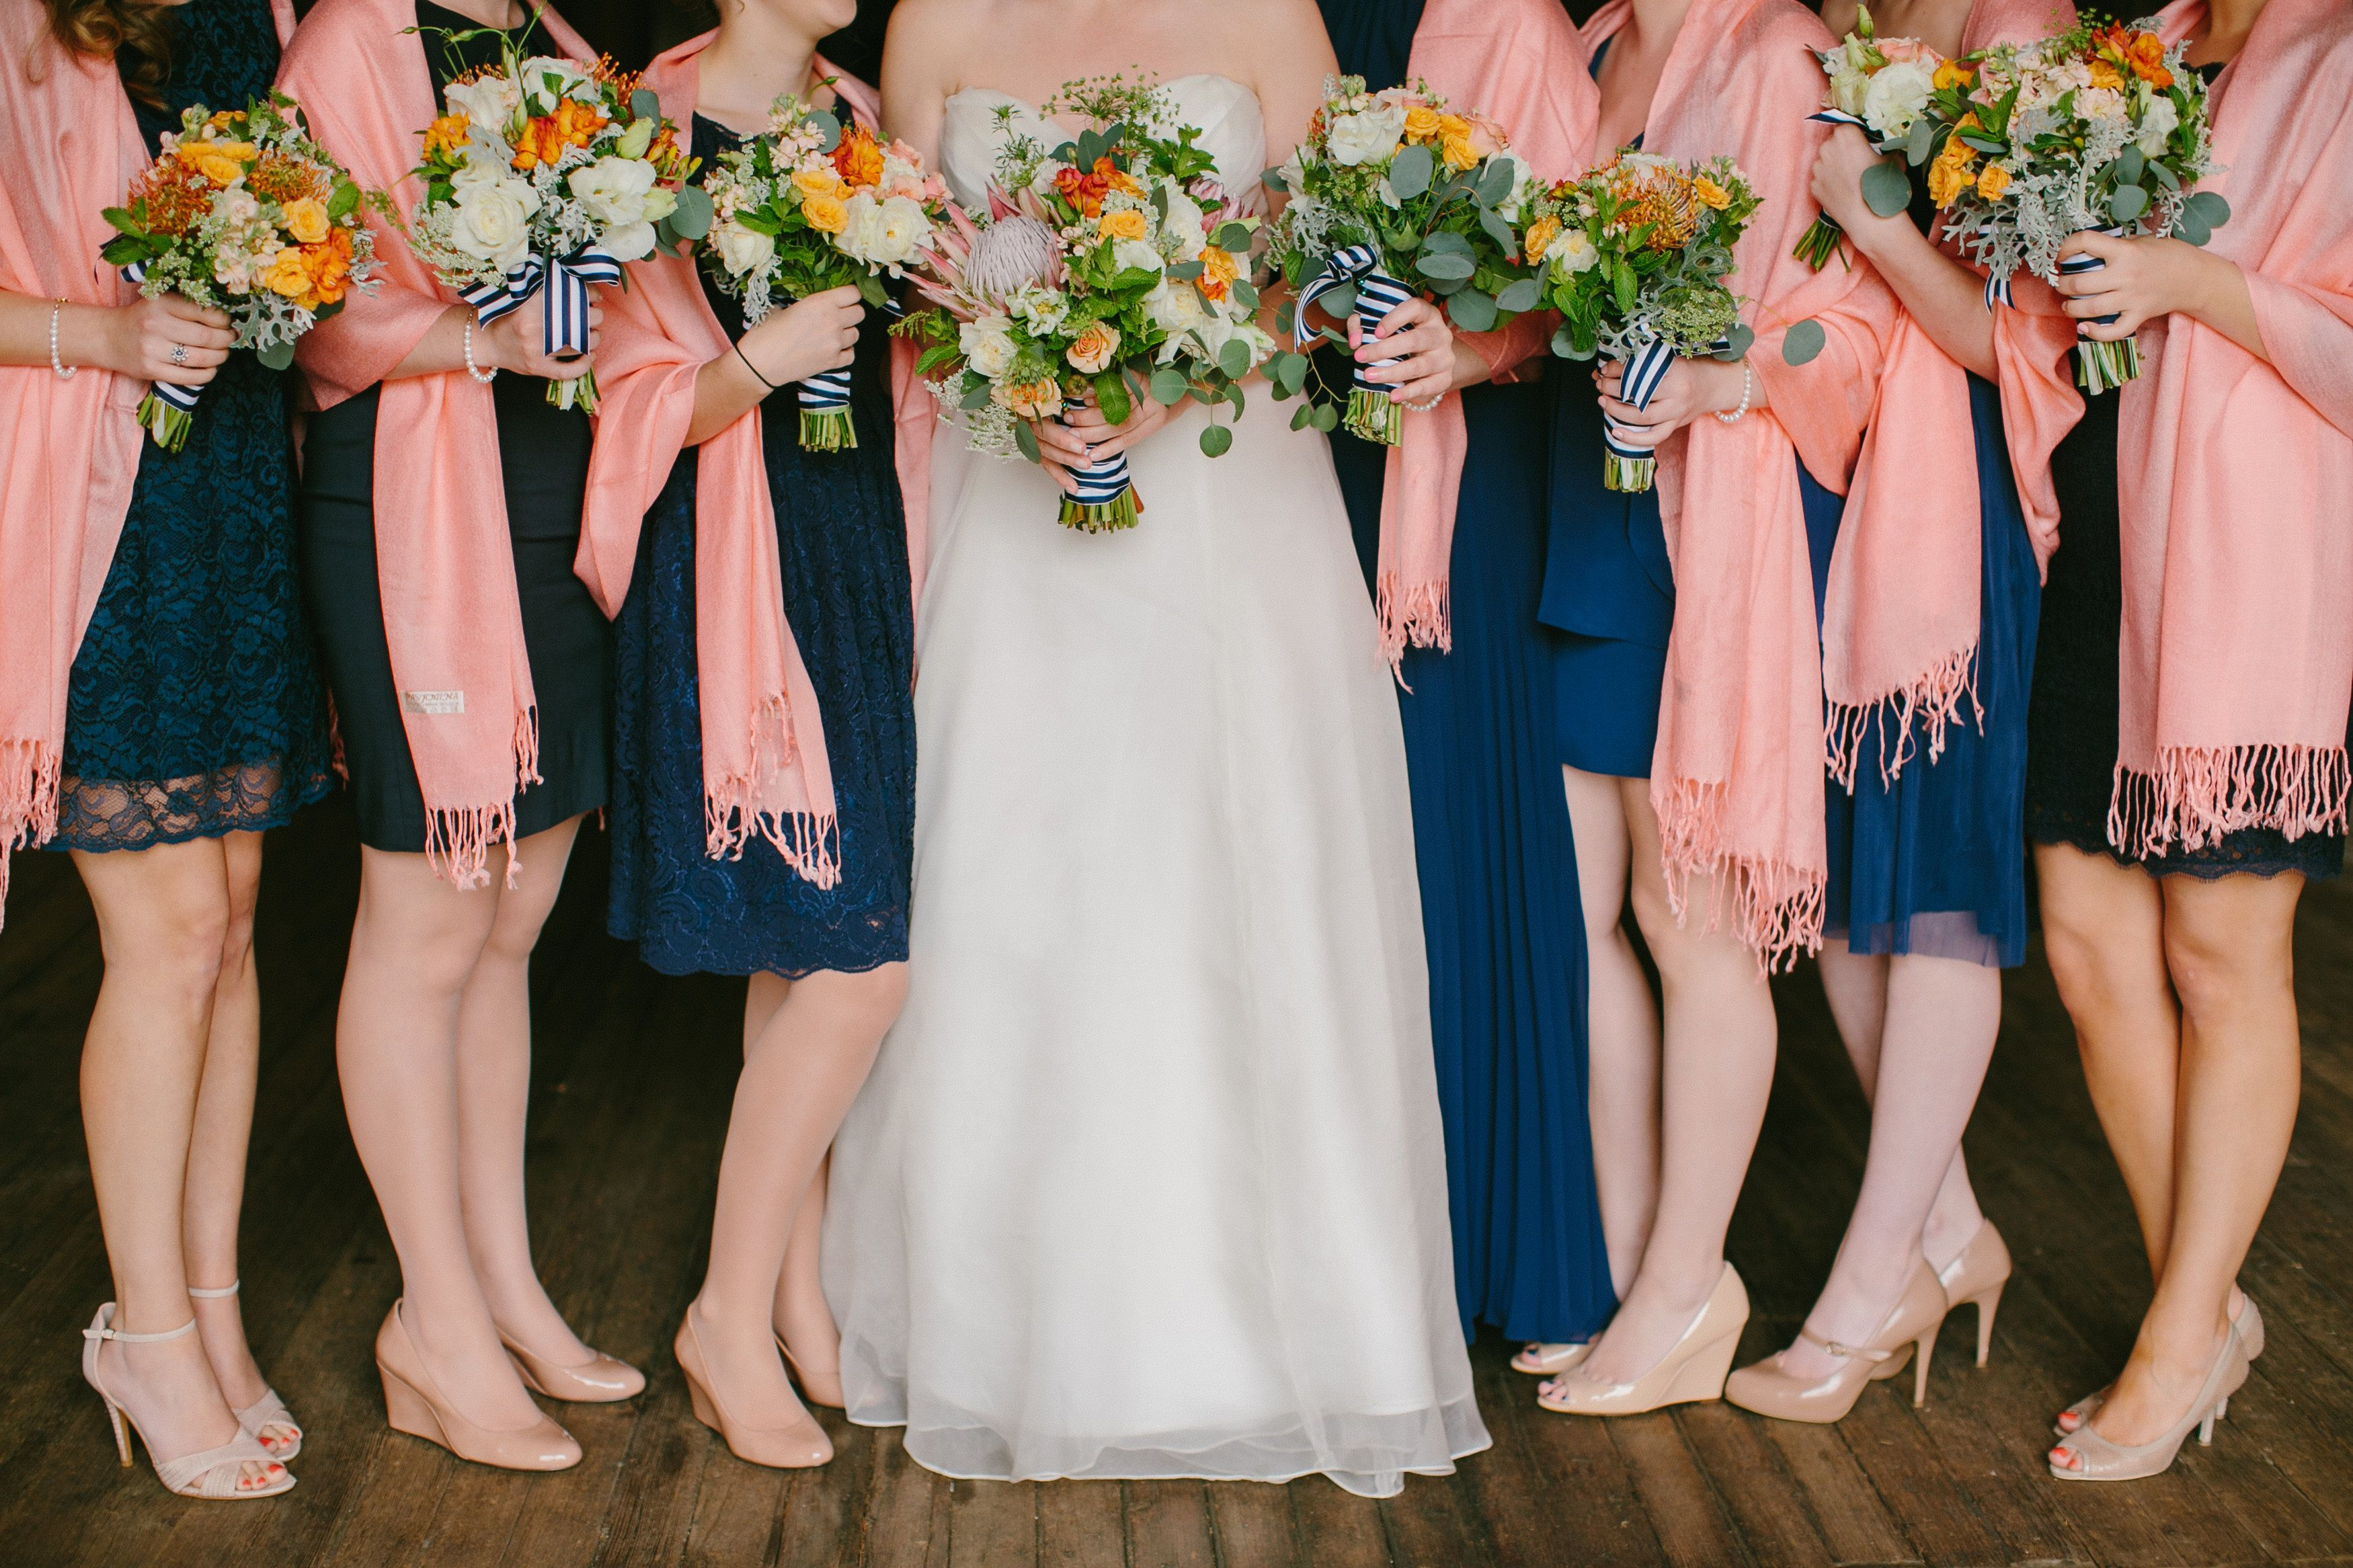 Mixed Navy Bridesmaids Dresses Nautical Striped Bouquets And C Scarves The Bouquet Ribbons Are Ugly But Matching Pasminas Nice